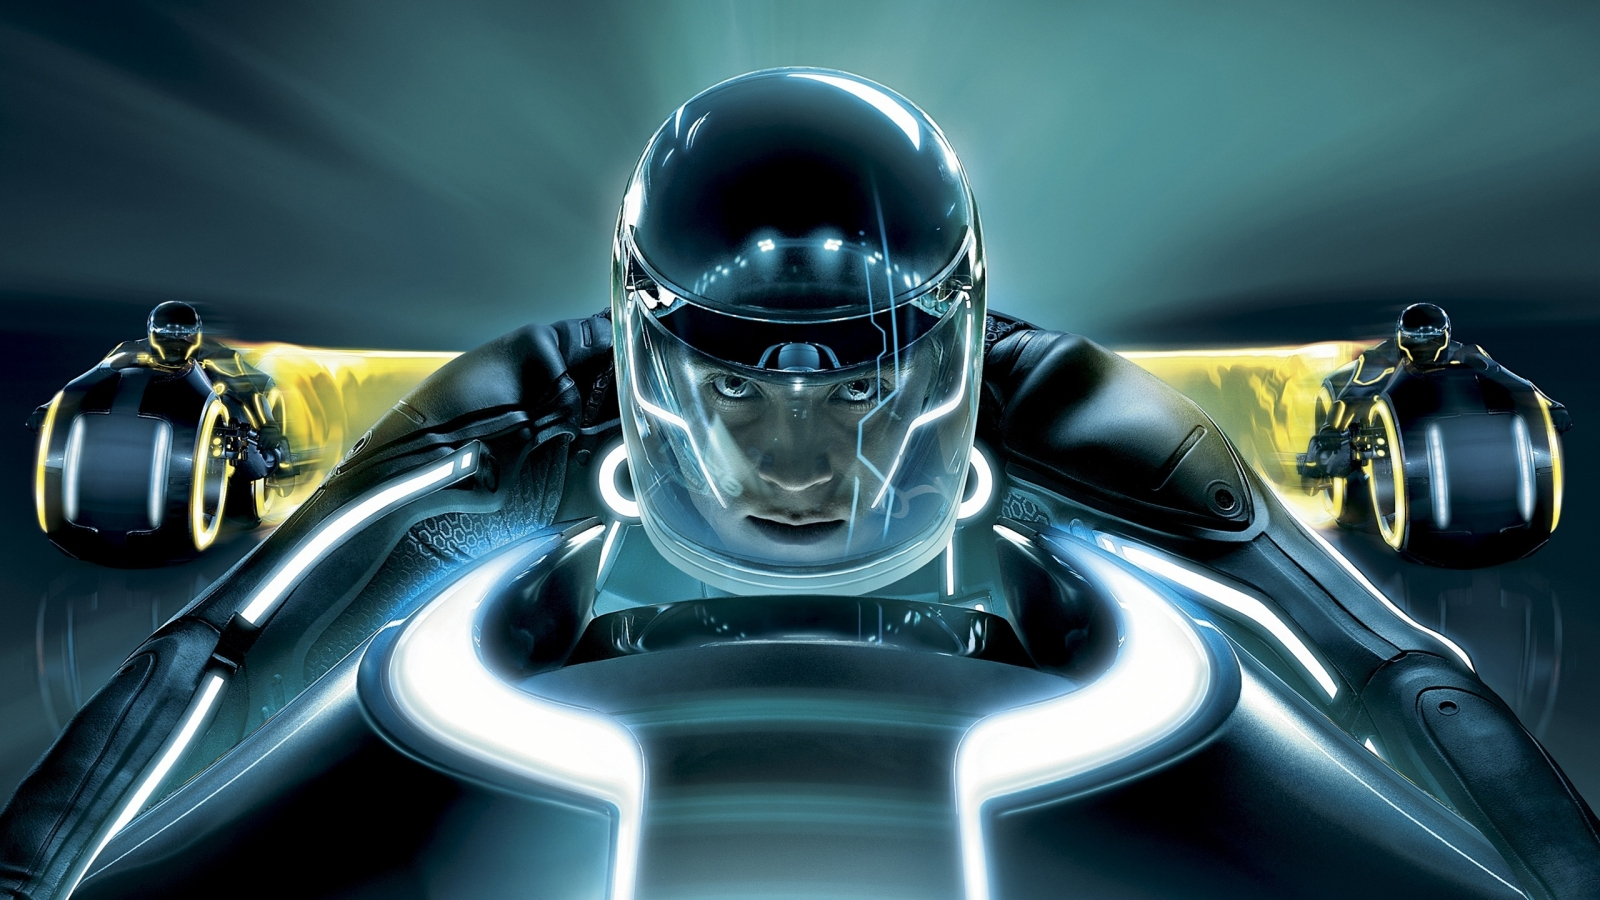 Tron Legacy Movie for 1600 x 900 HDTV resolution